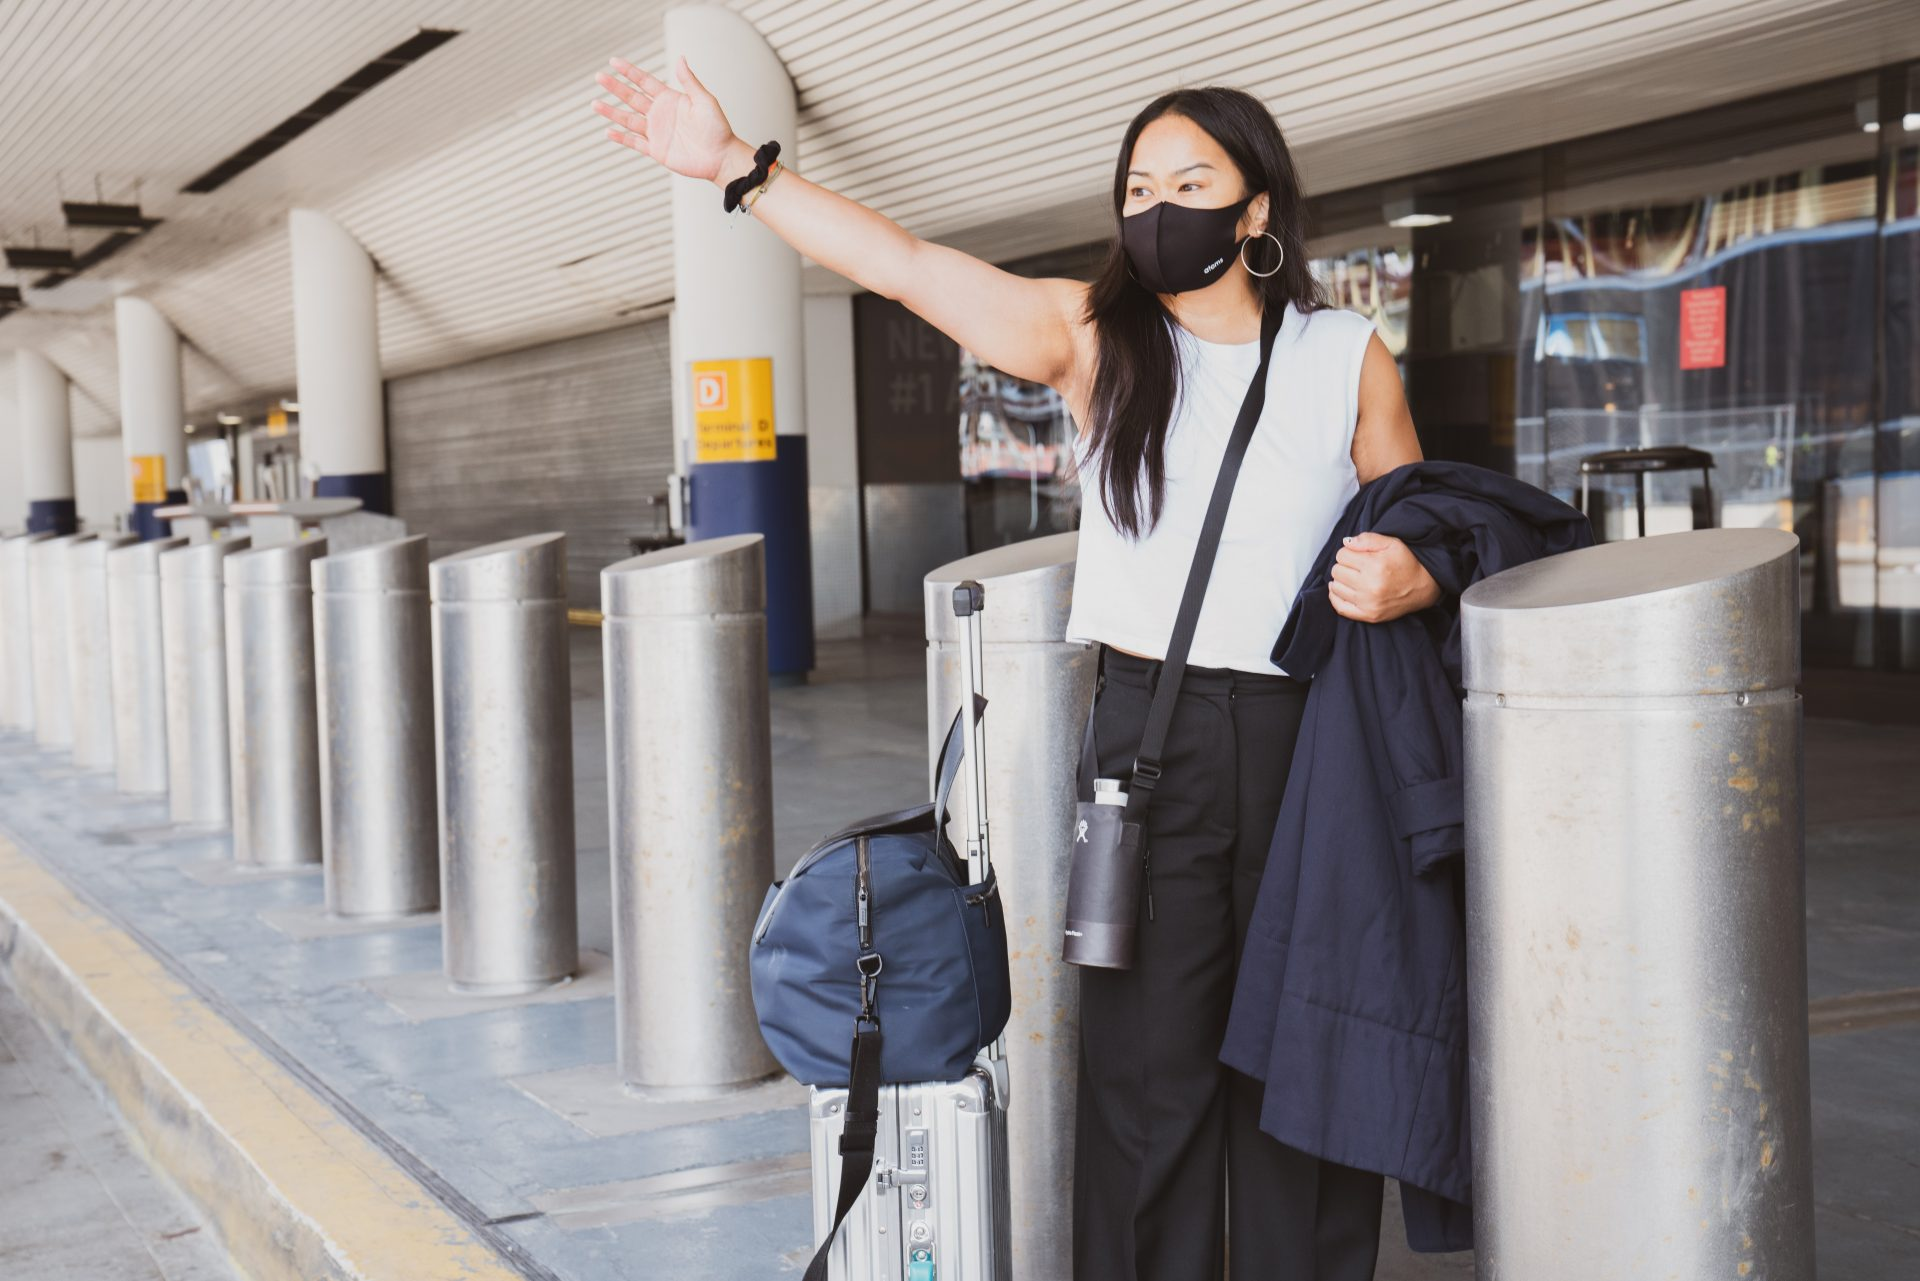 Woman waving at someone outside an airport.